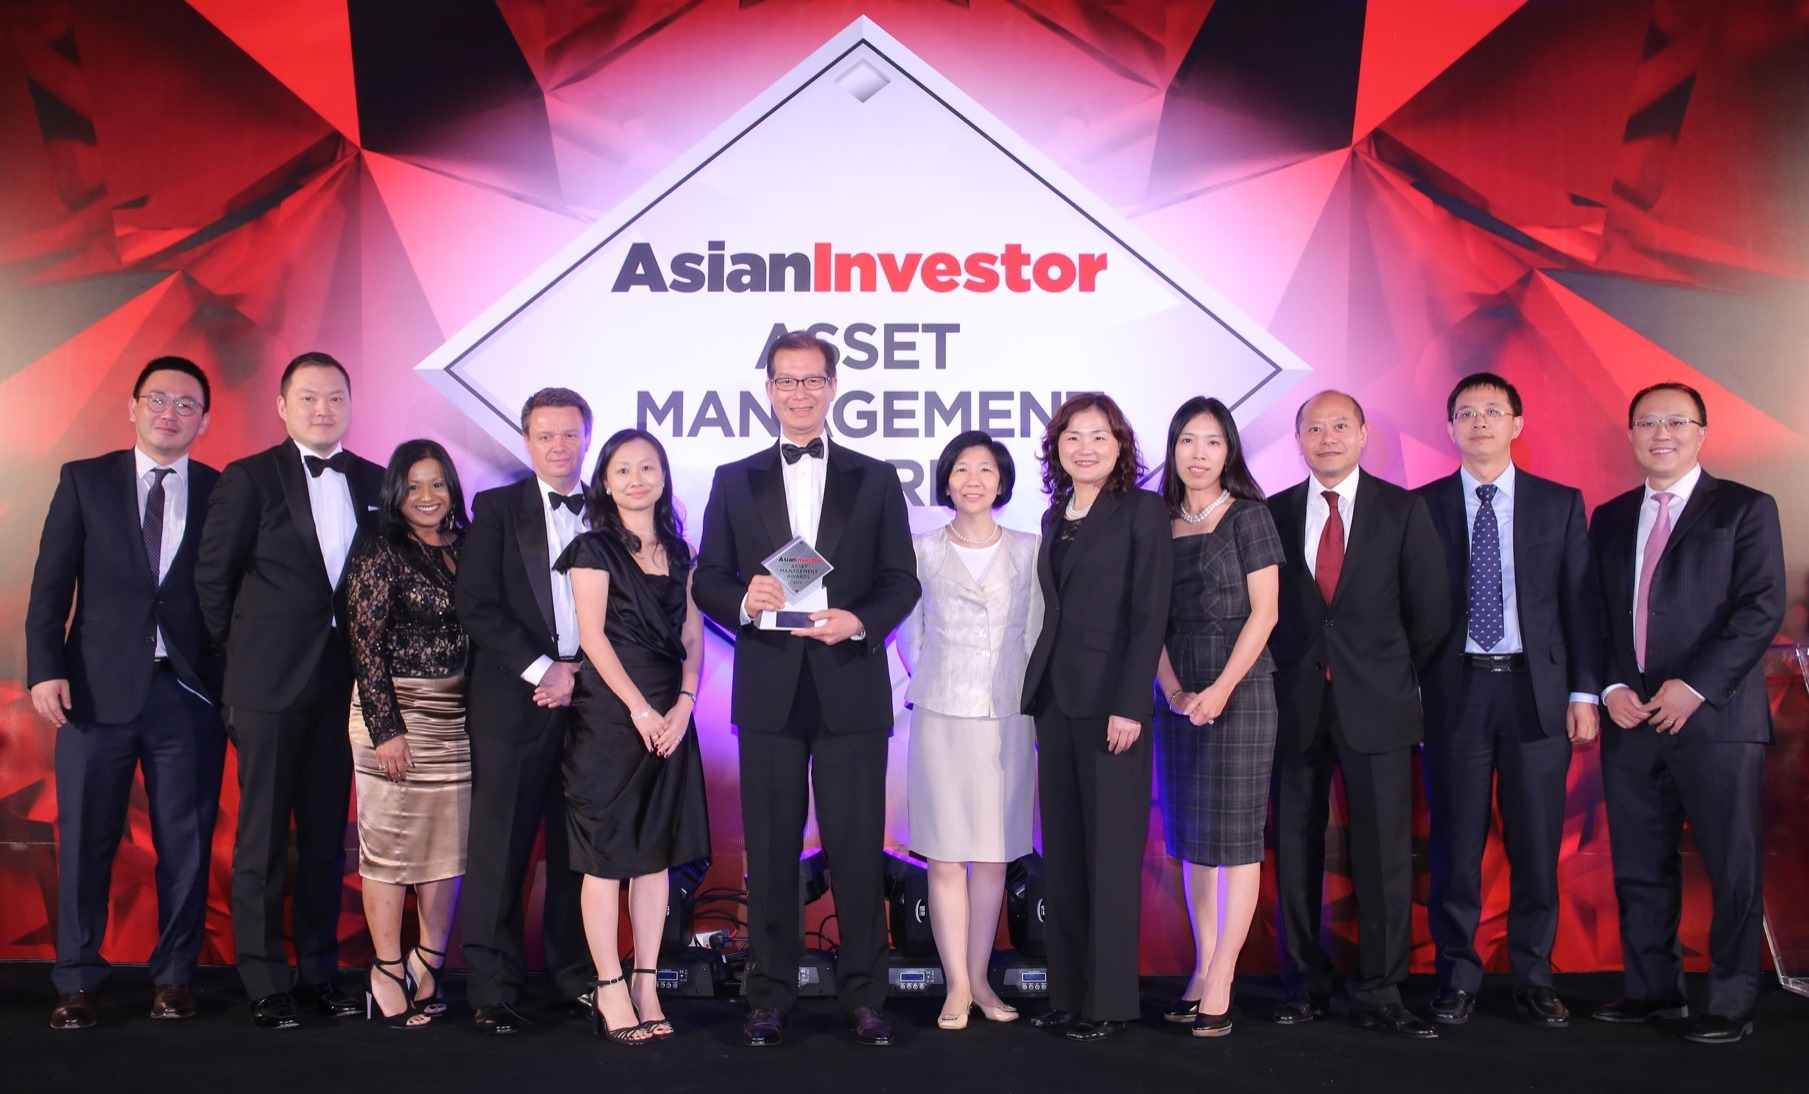 AsianInvestor Asset Management Awards 2016